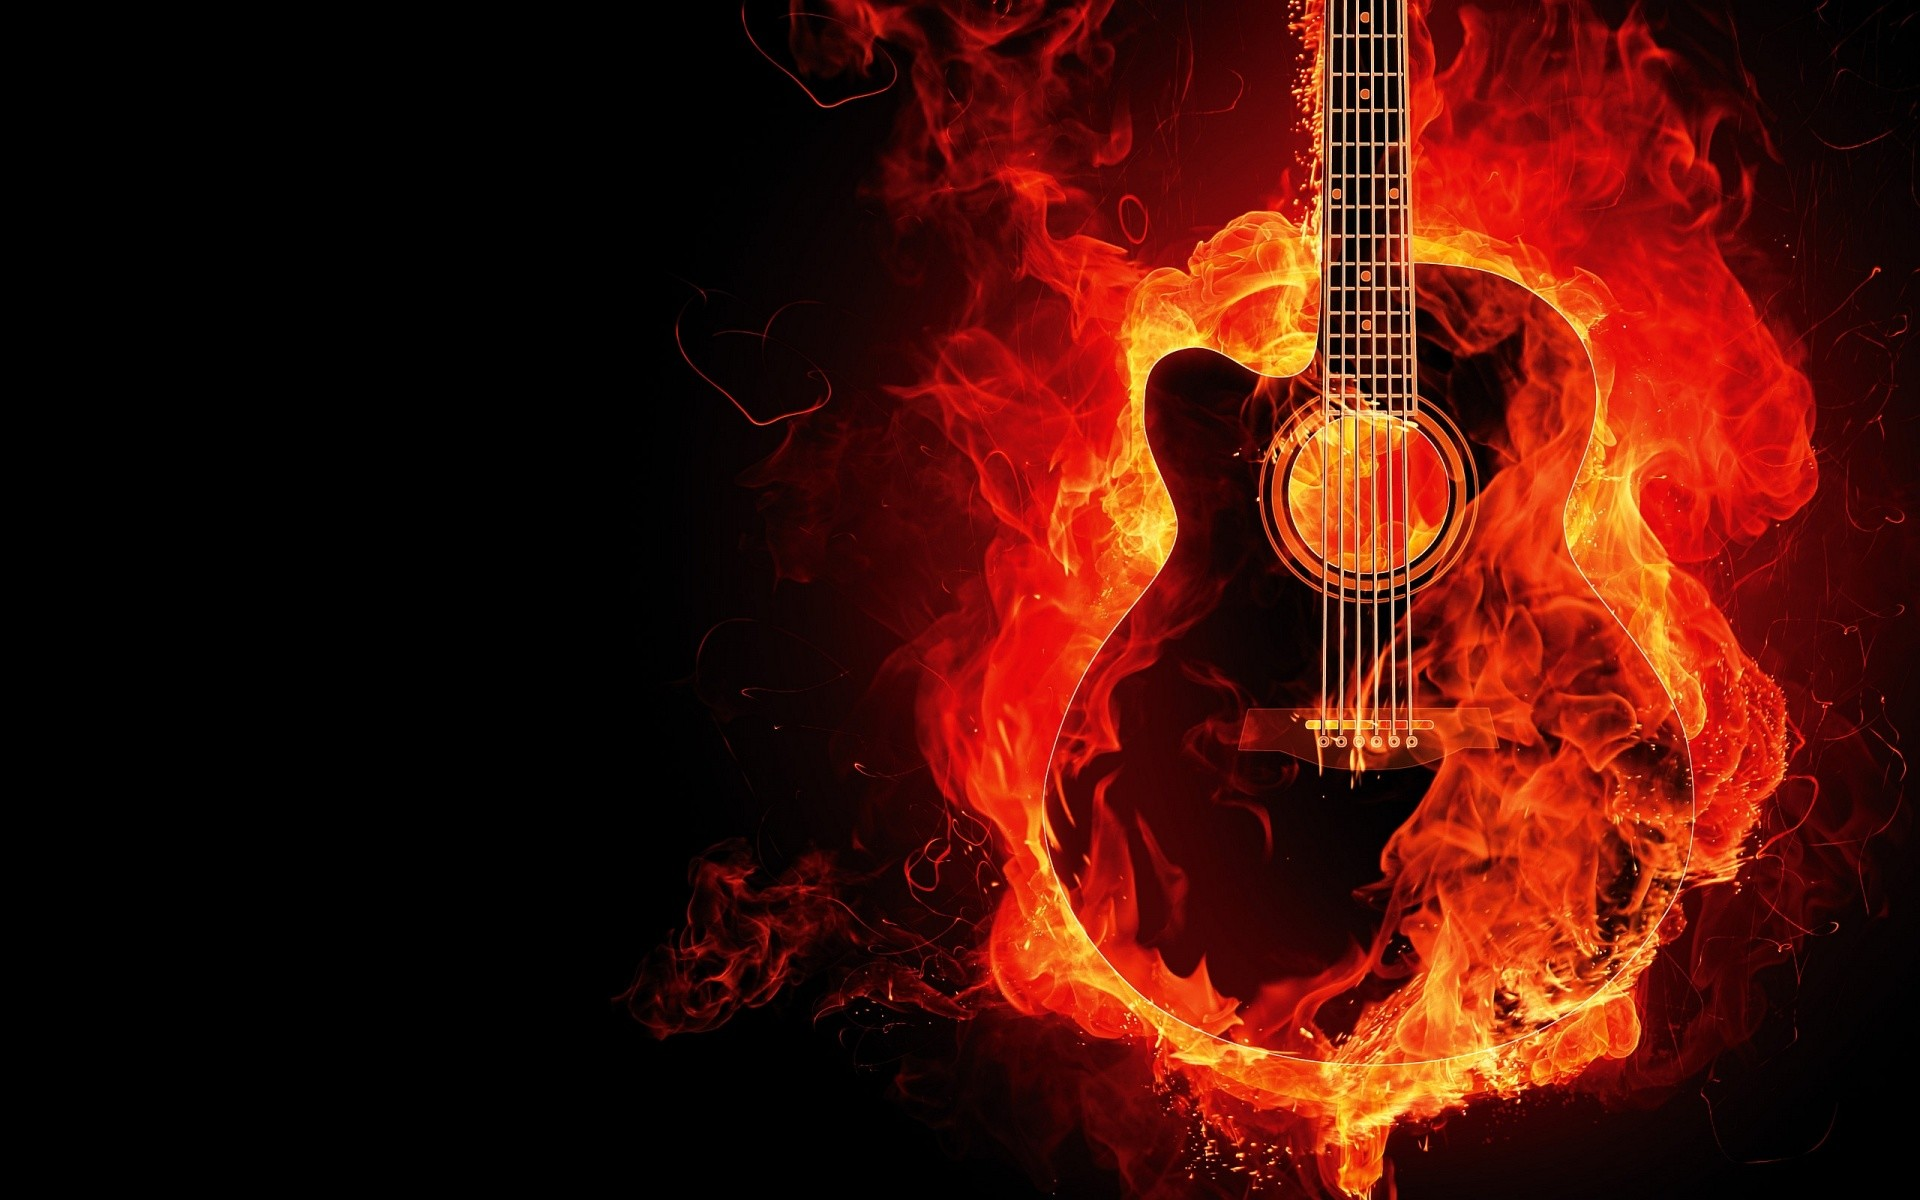 1920x1200 High Definition Awesome Guitar Wallpaper - Full HD Pics